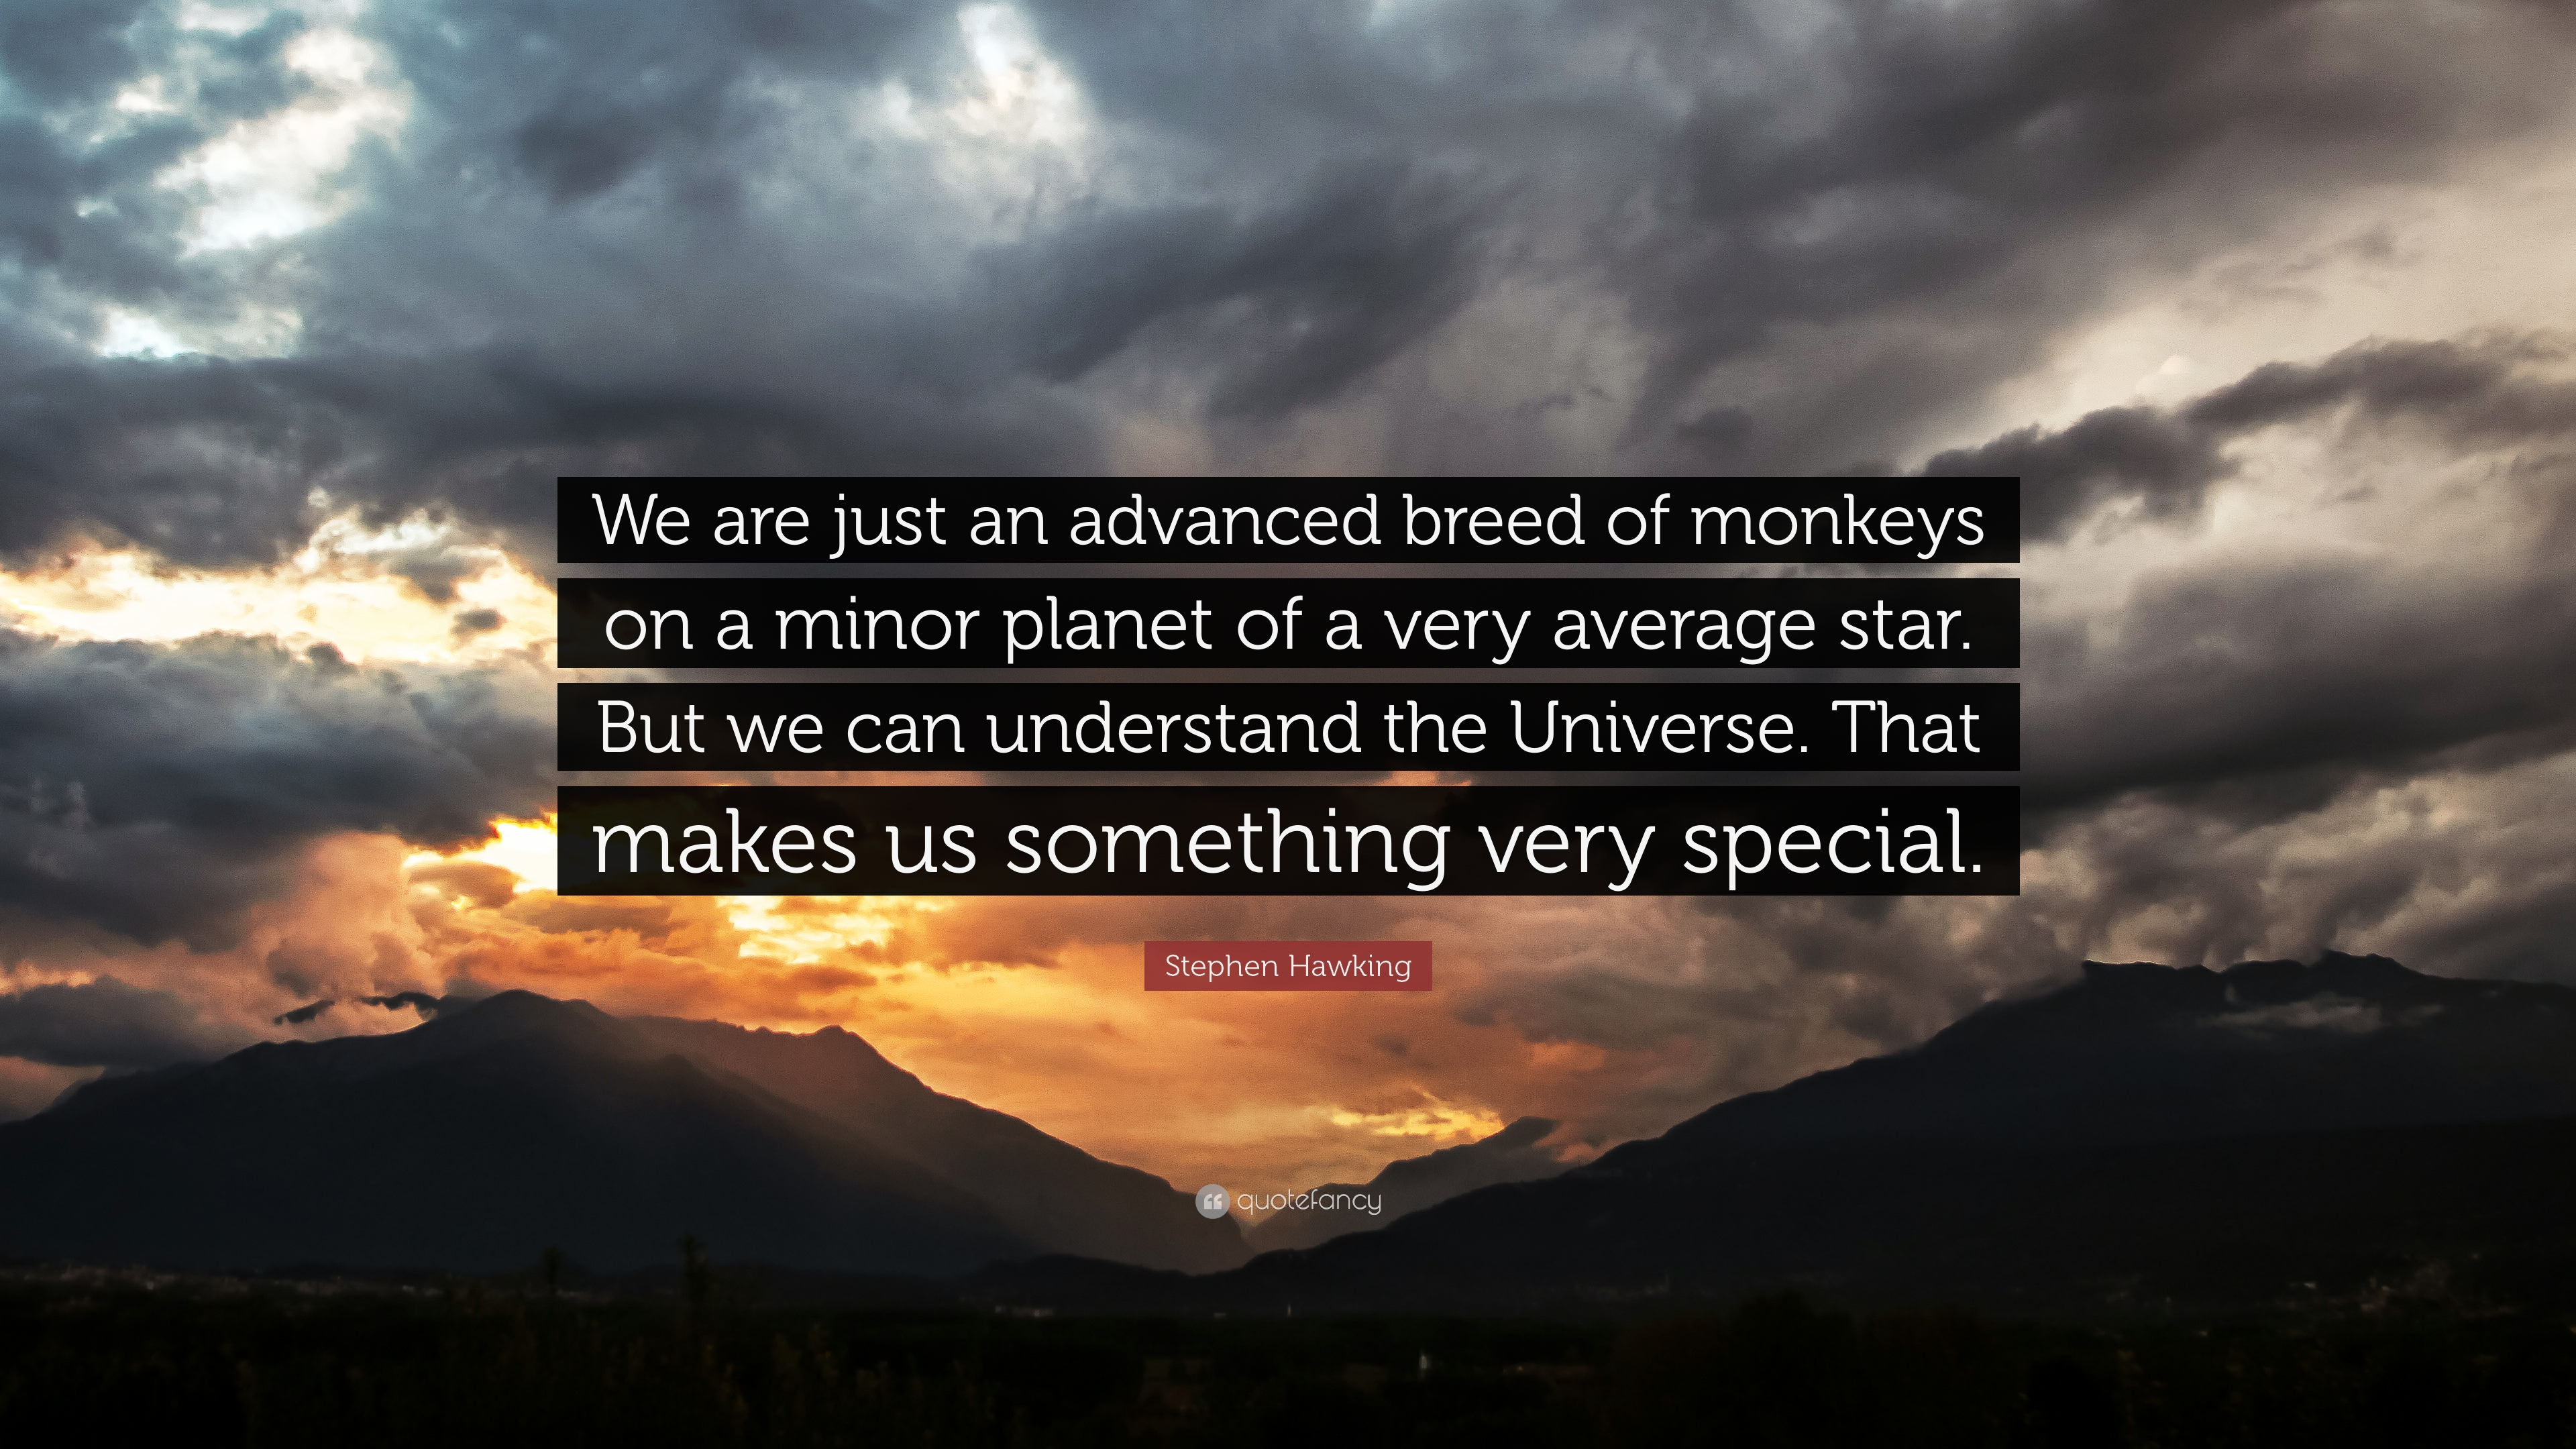 Stephen Hawking Advanced Breed of Monkeys Quote